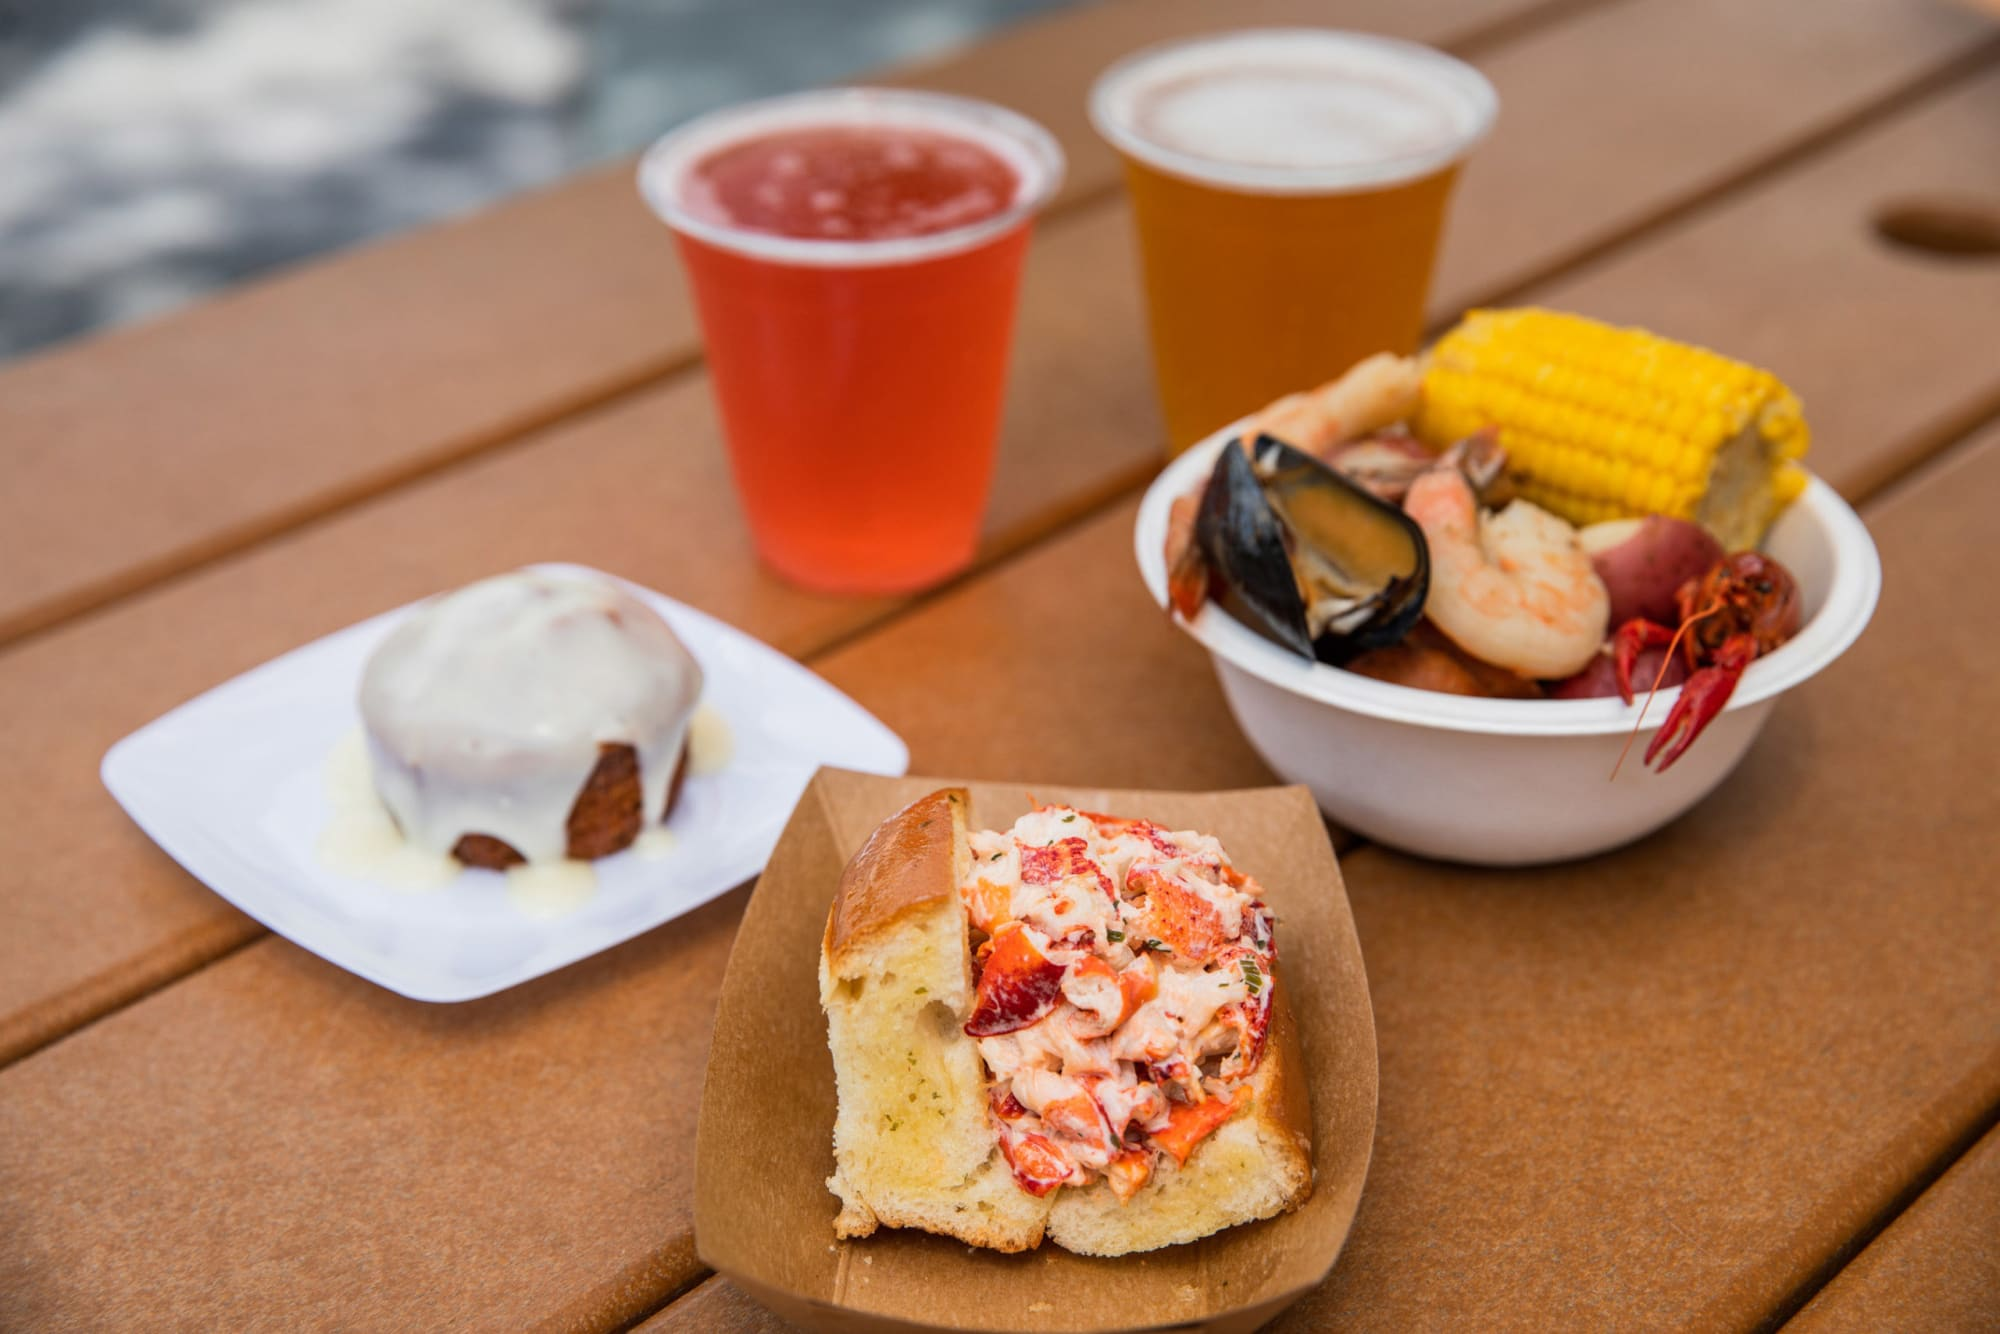 Taste of Epcot celebrates the favorite flavors that foodies love